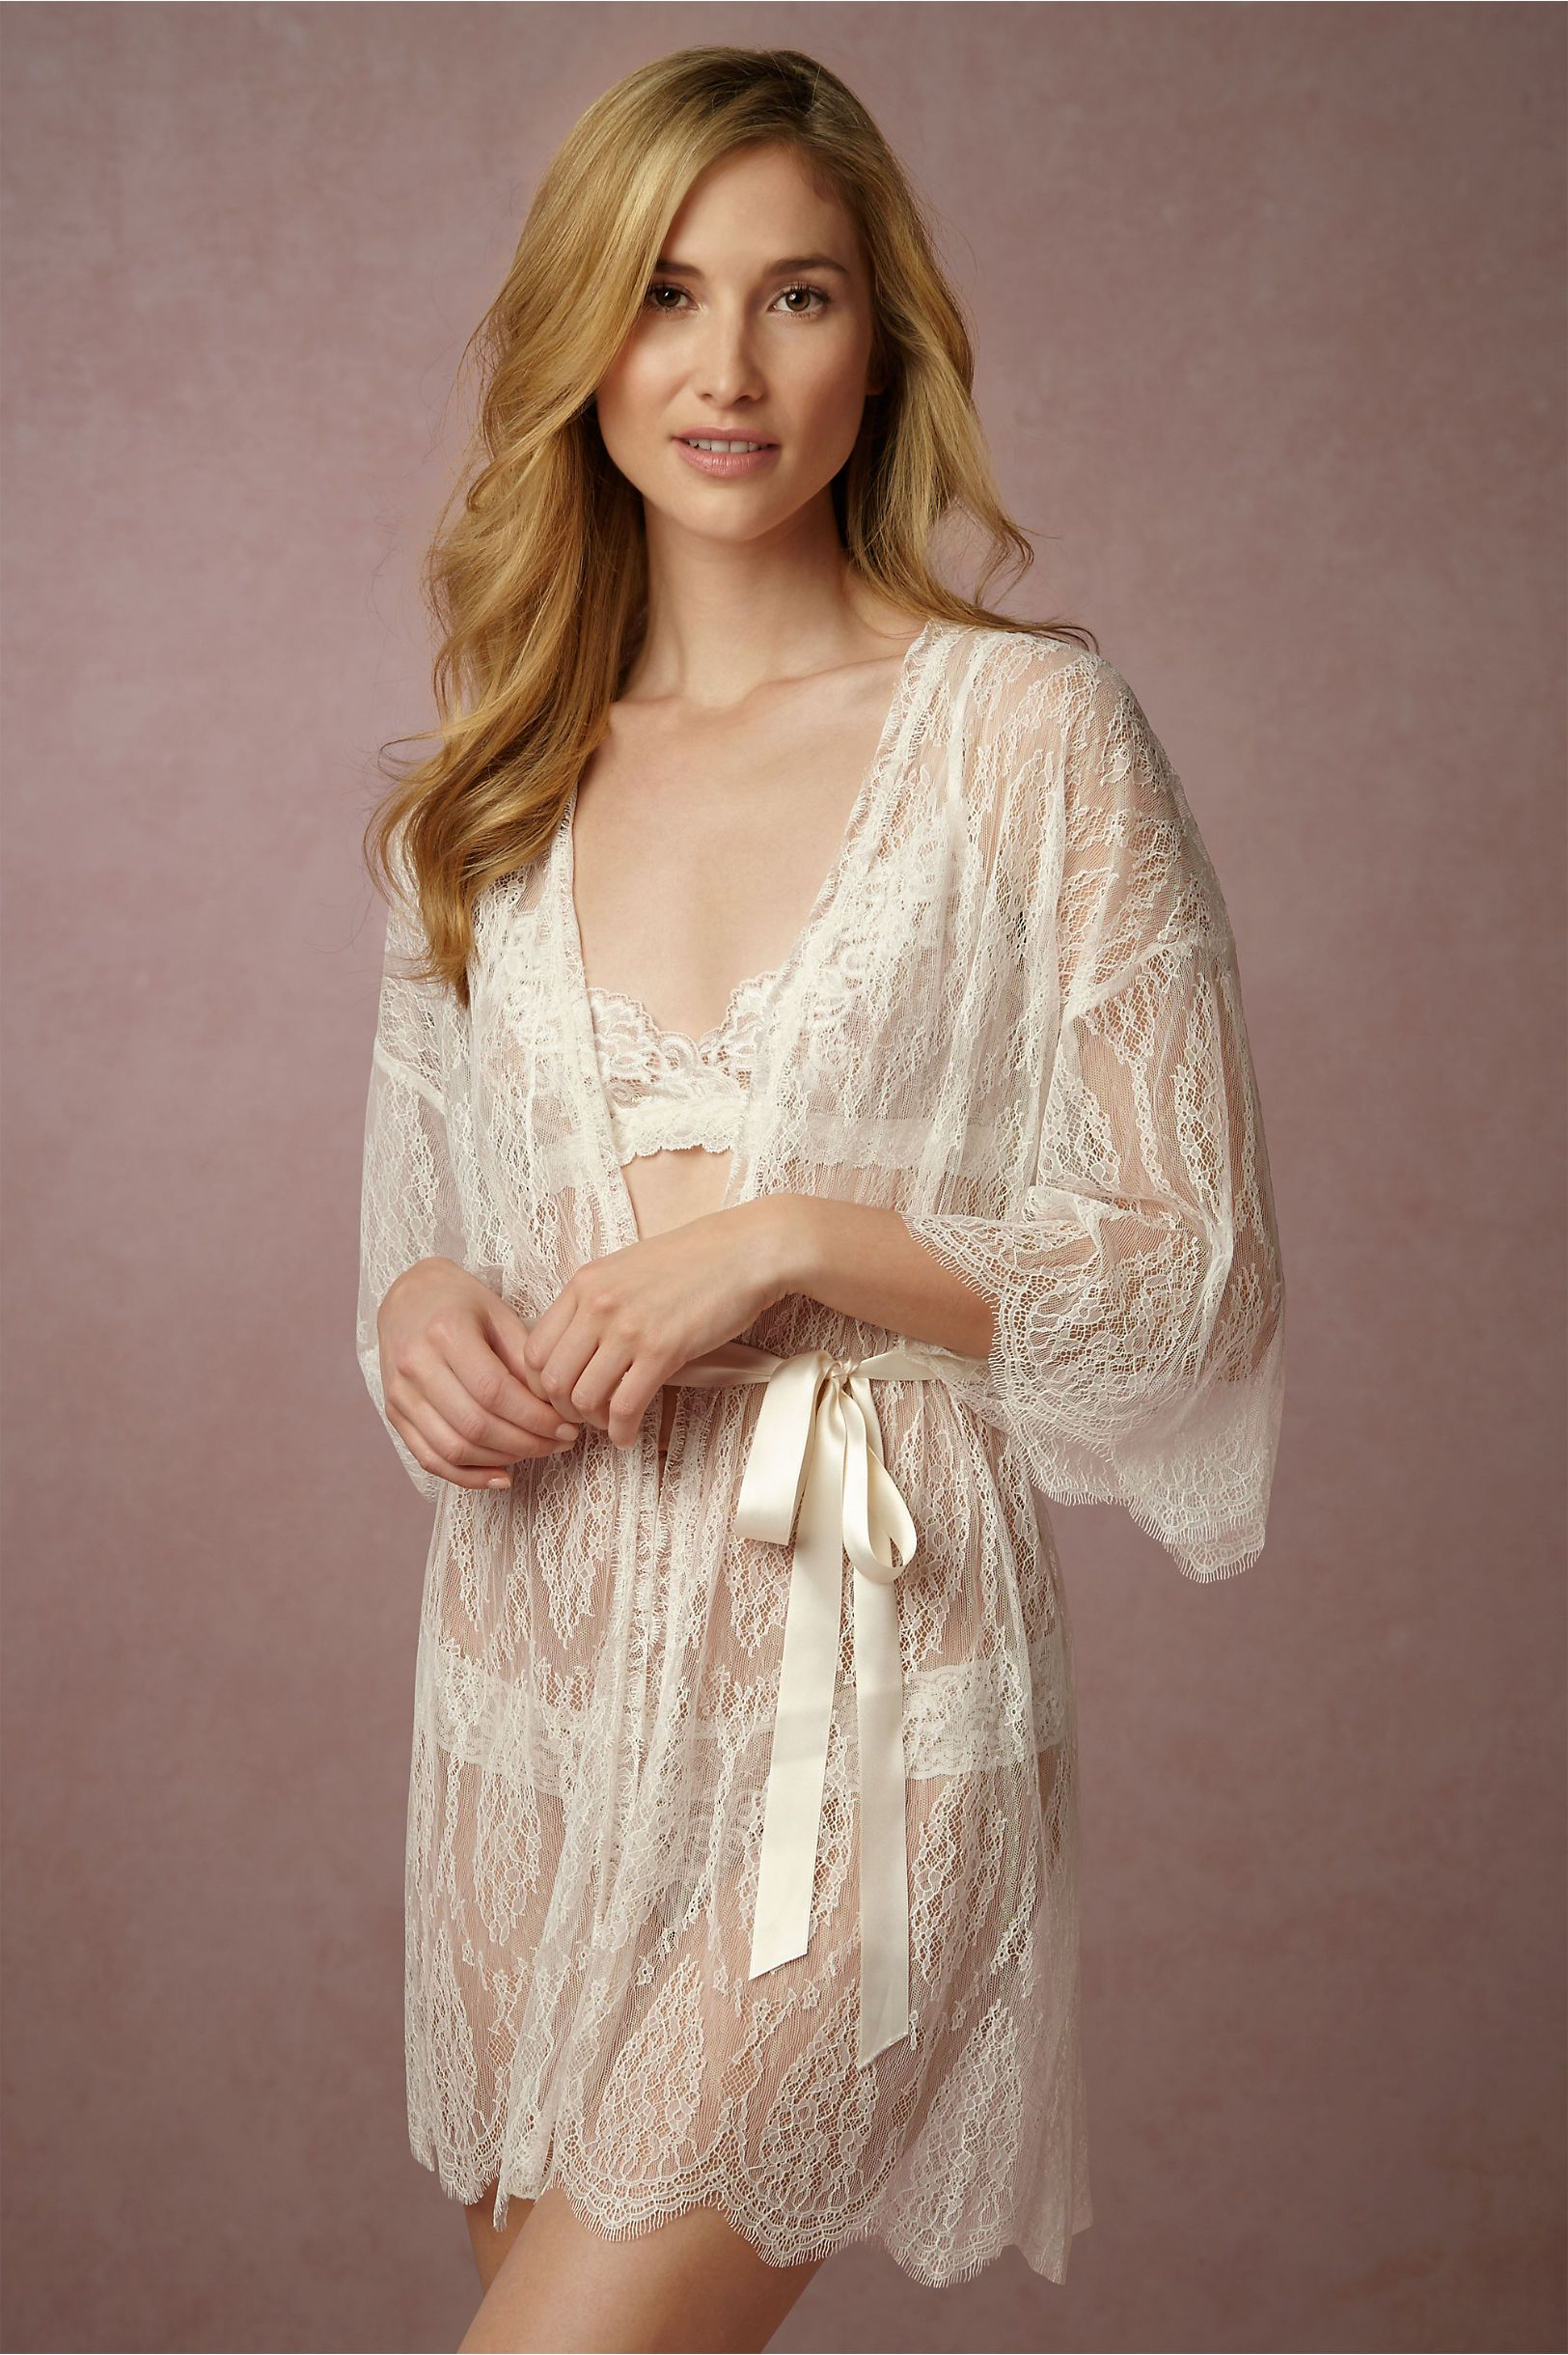 a5197a604 BHLDN Leandra Lace Robe in Bride Bridal Lingerie at BHLDN